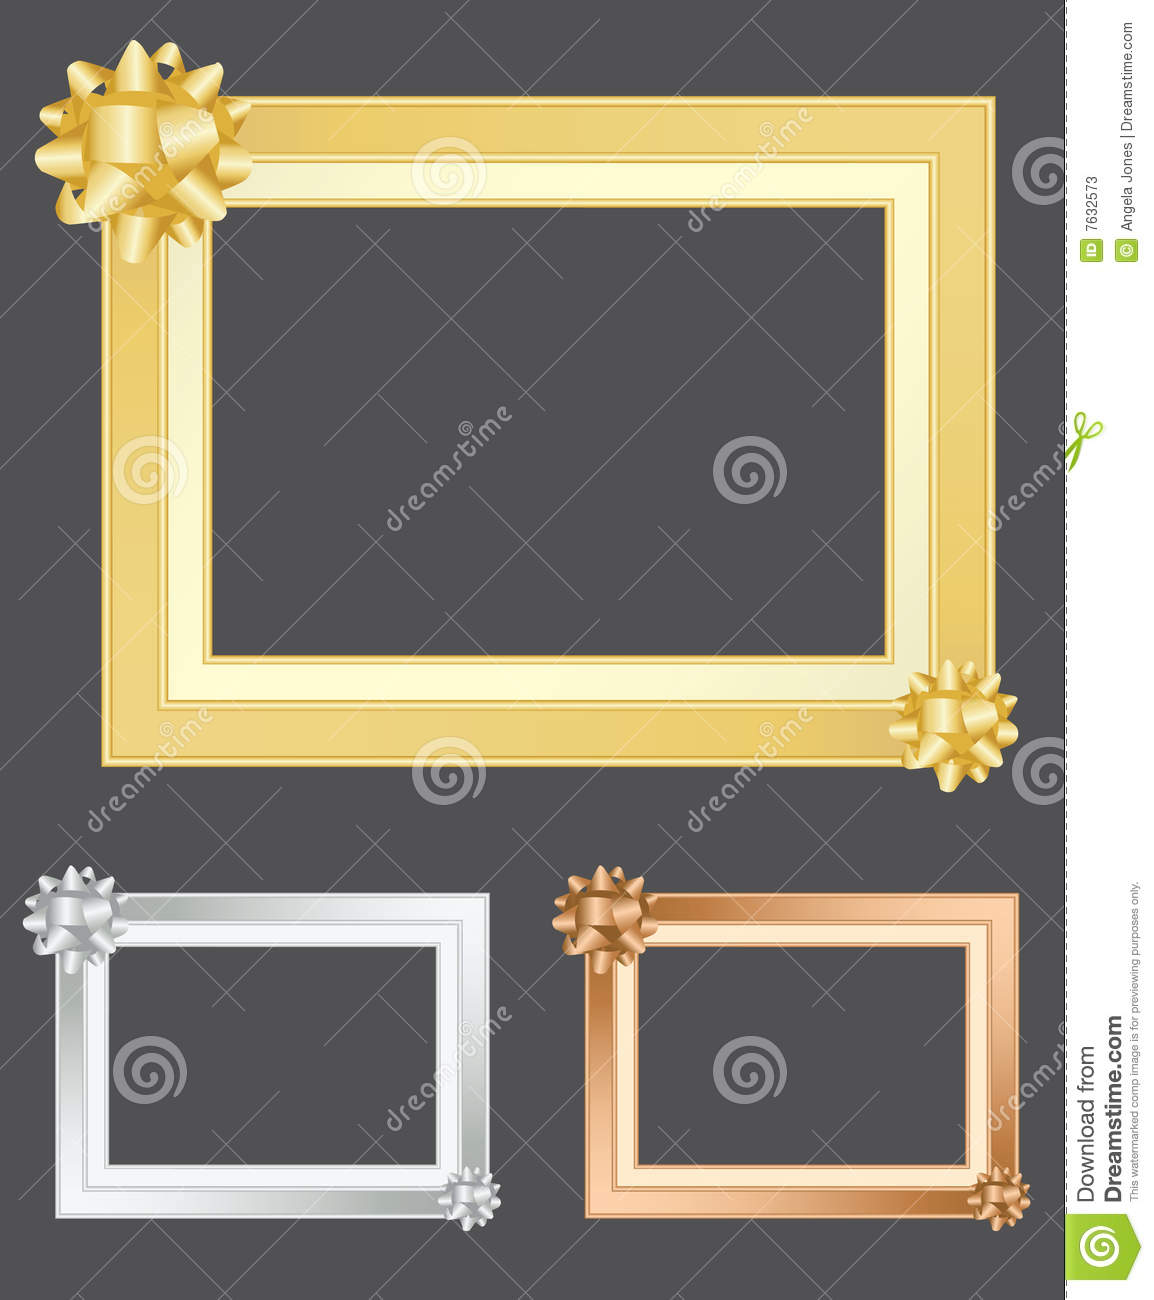 Gold Silver And Bronze Frames Stock Vector Illustration Of Inlay